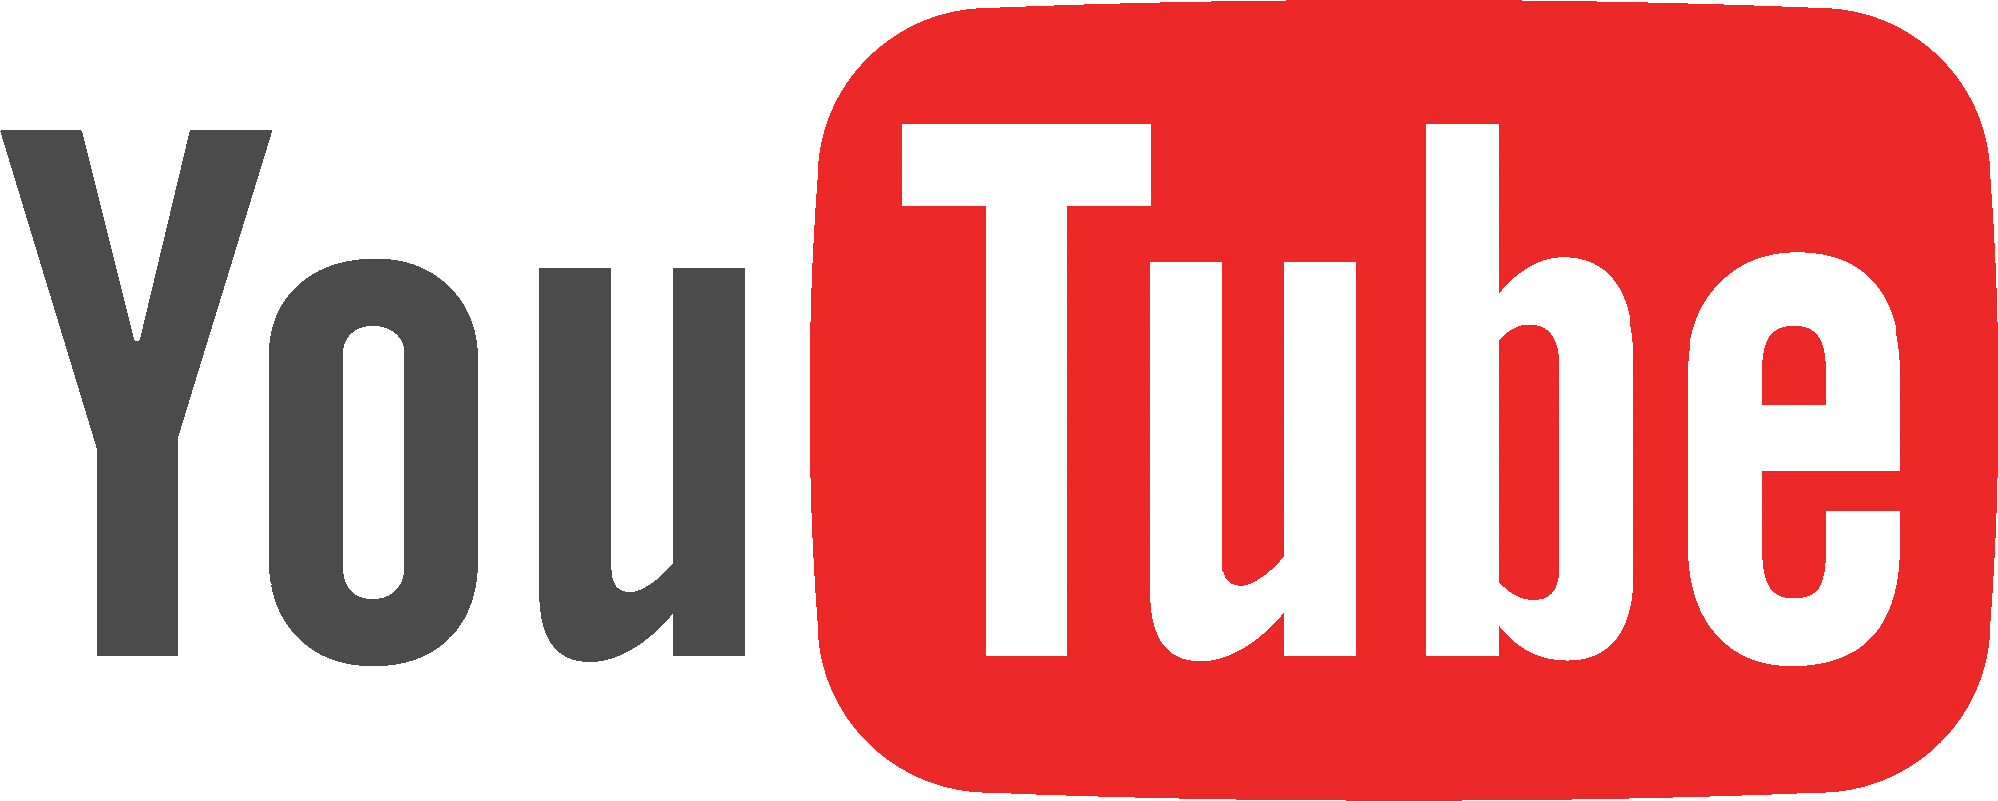 thumbnail of YouTube logo